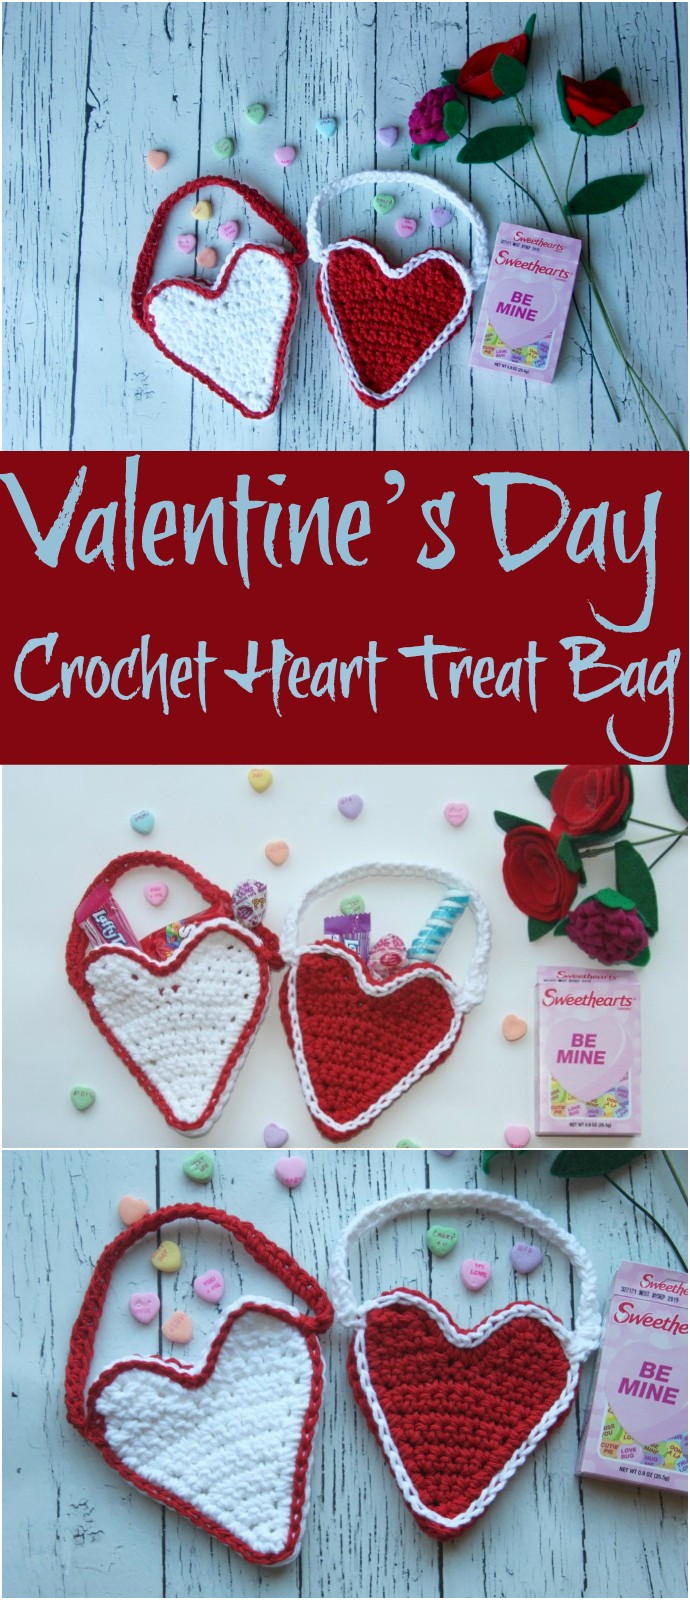 Valentine's Day Crochet Heart Treat Bag